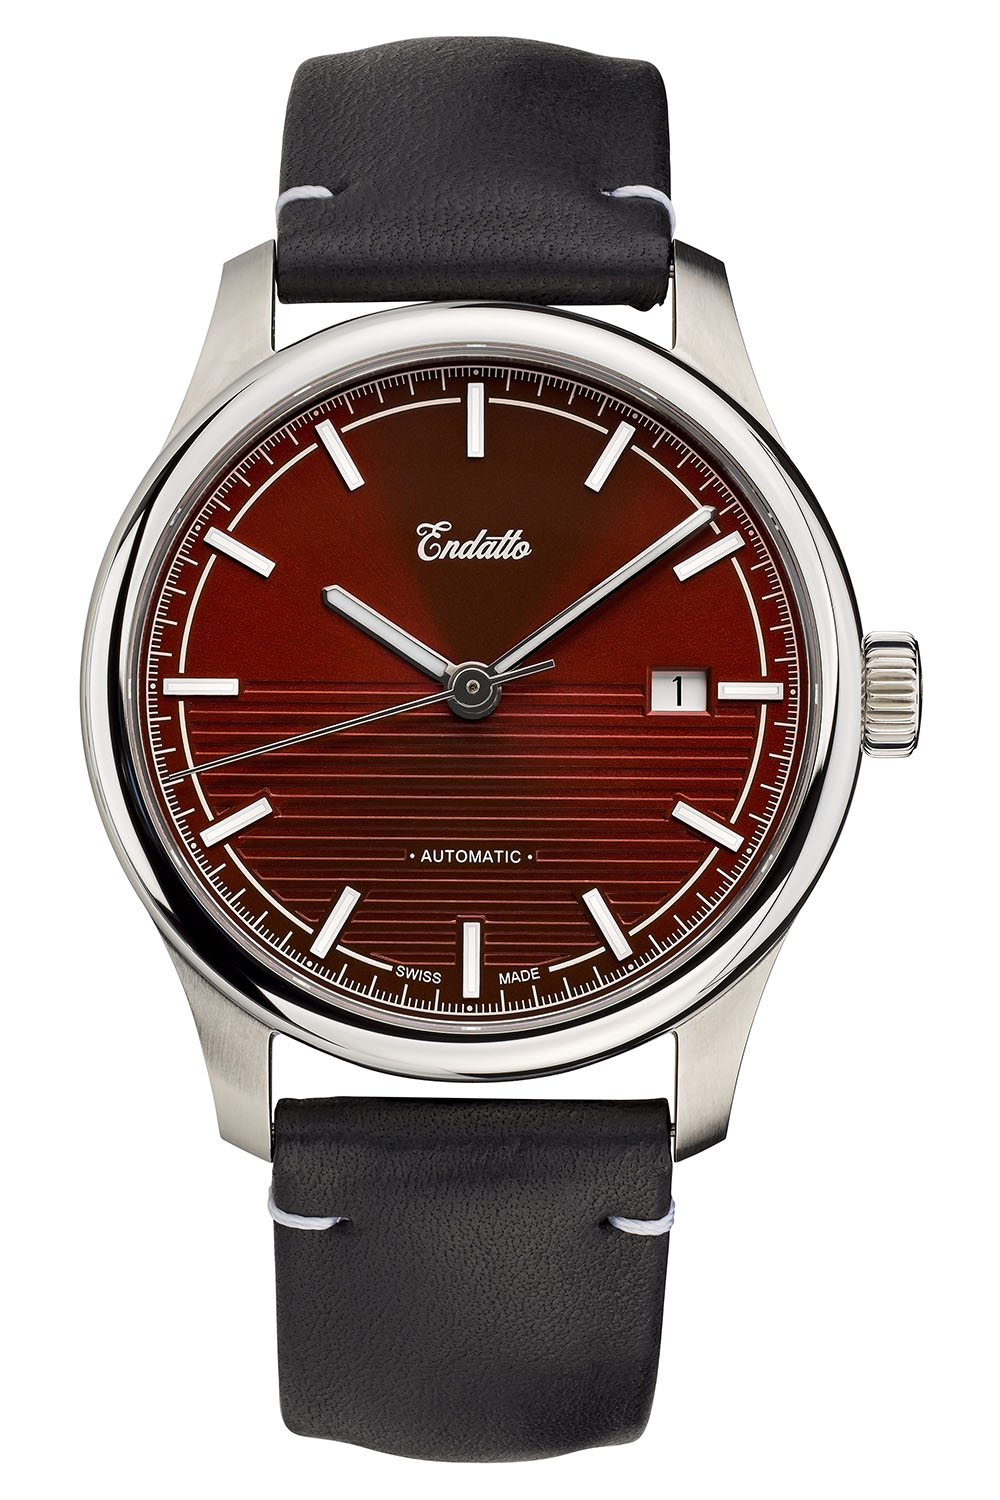 Endatto C1V1 and C1V2 - New American Watch Brand